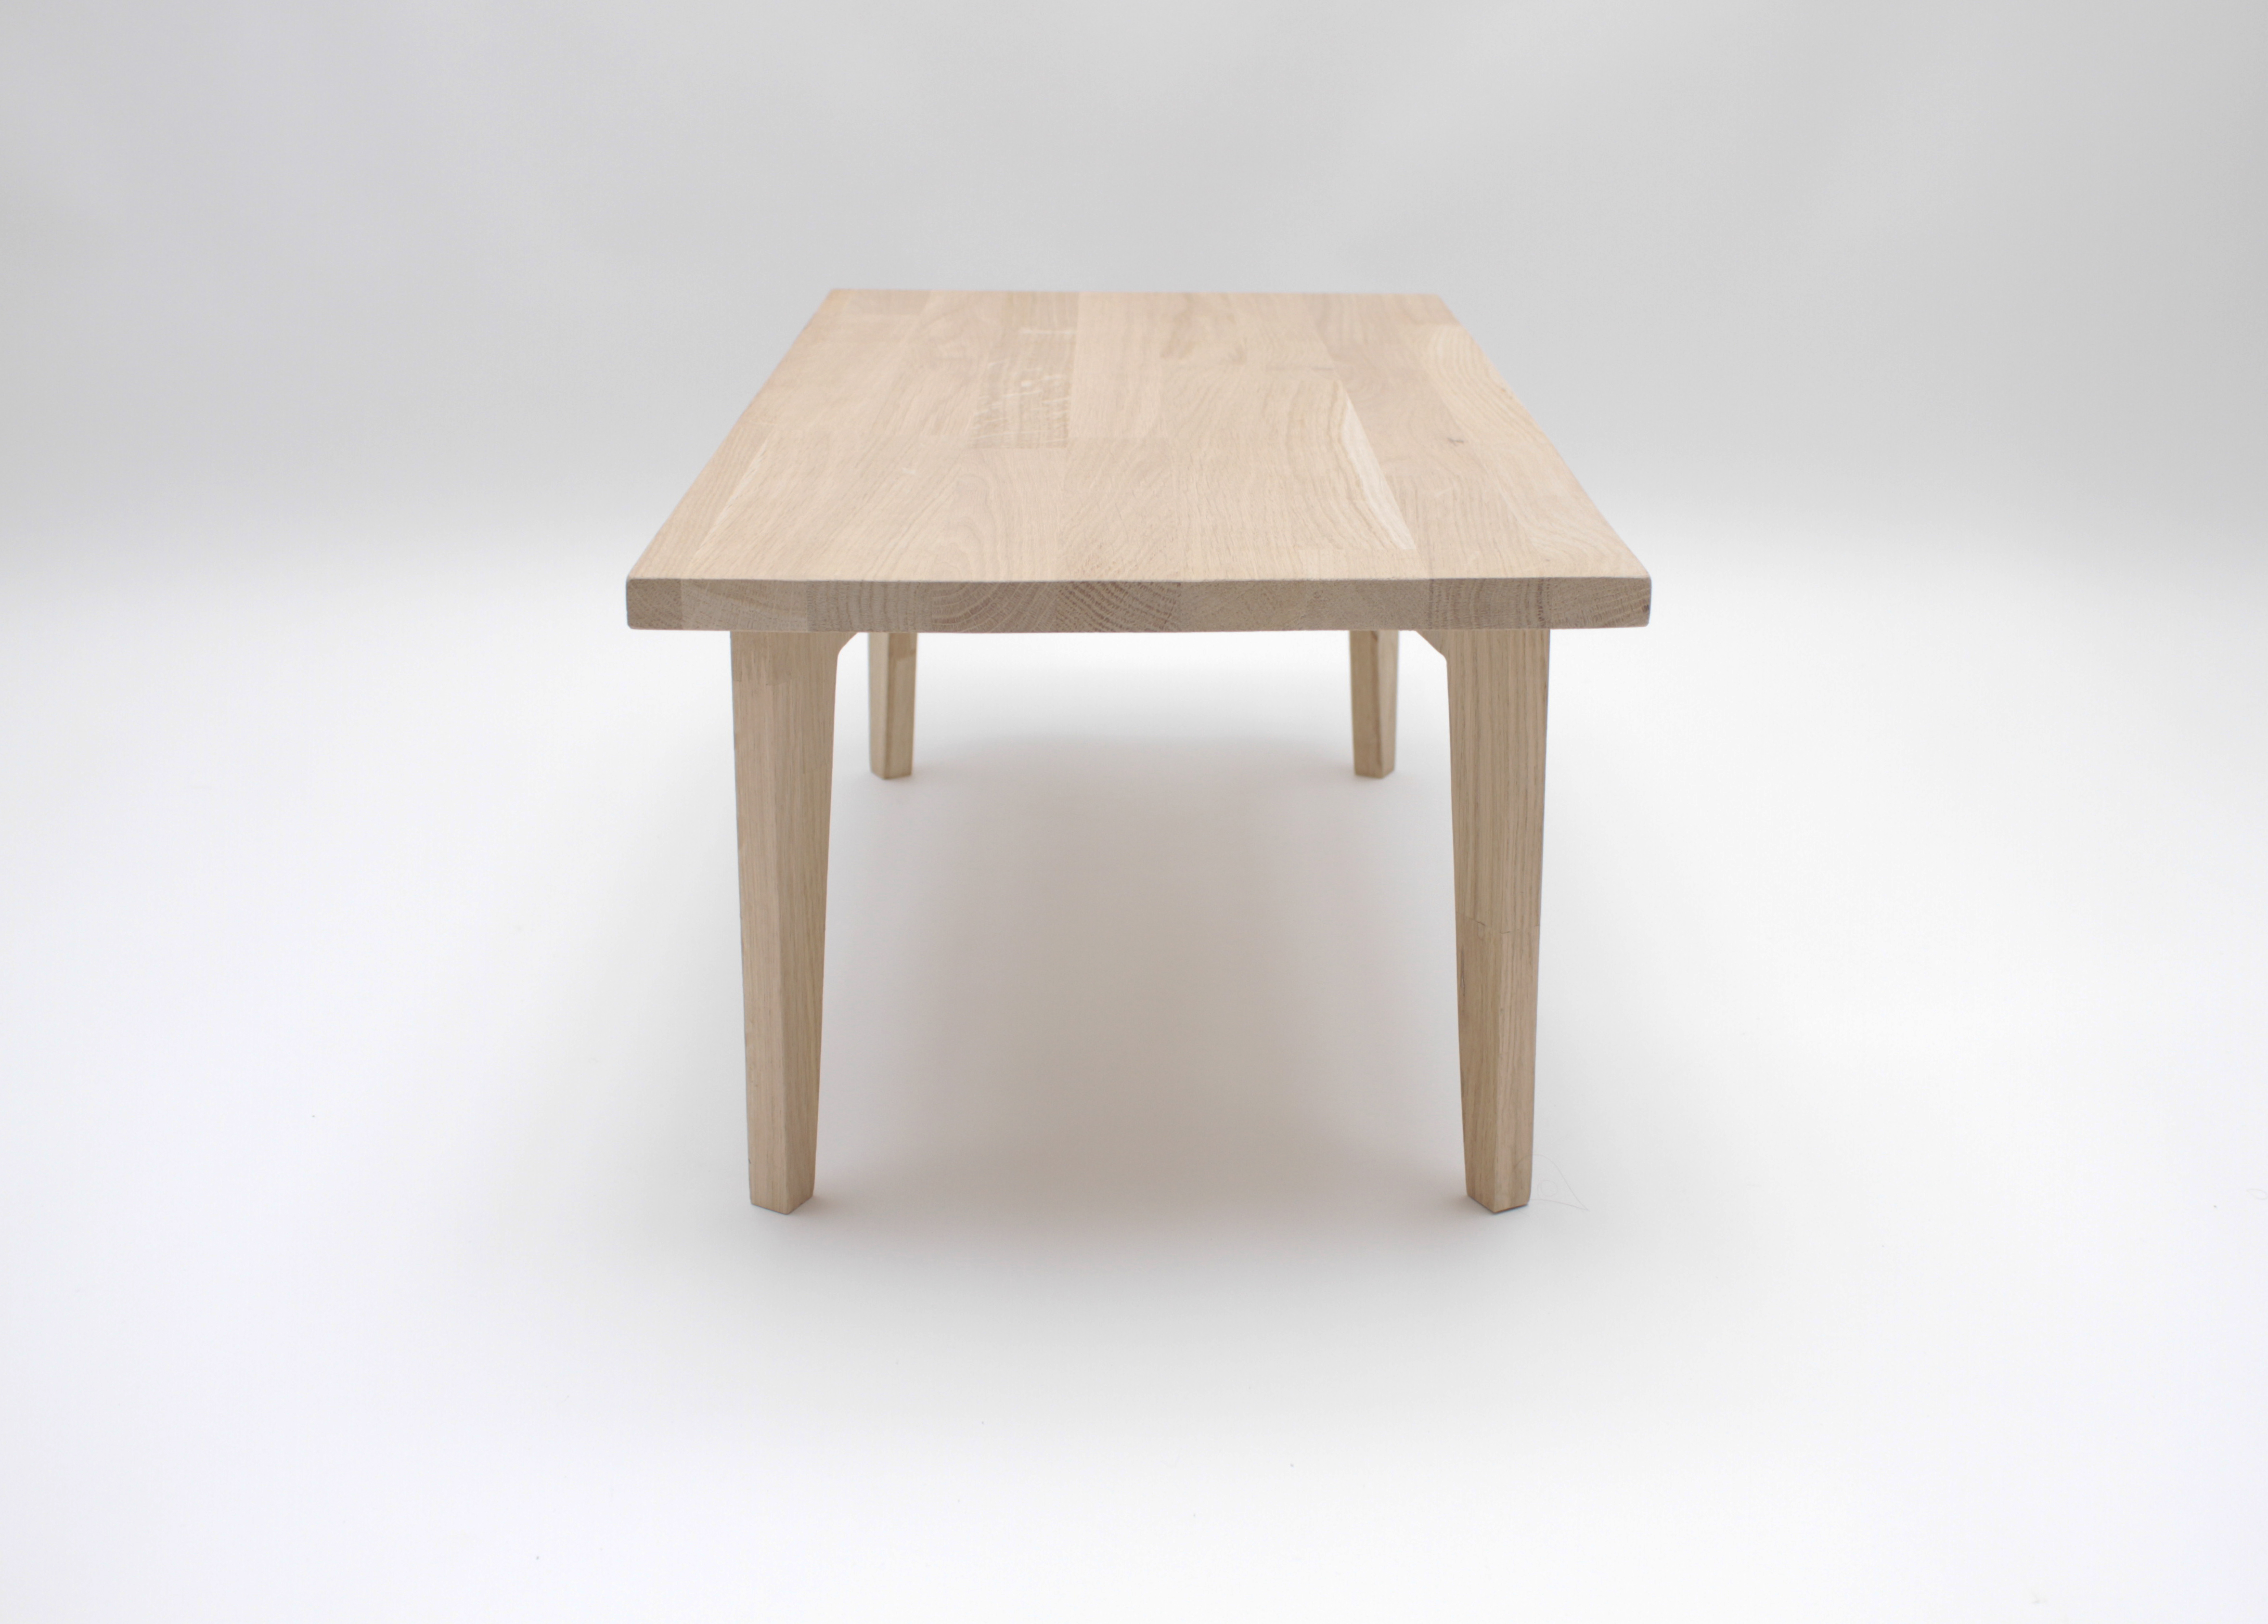 woodaucarre_-_Table_Brut_de_Chêne_face